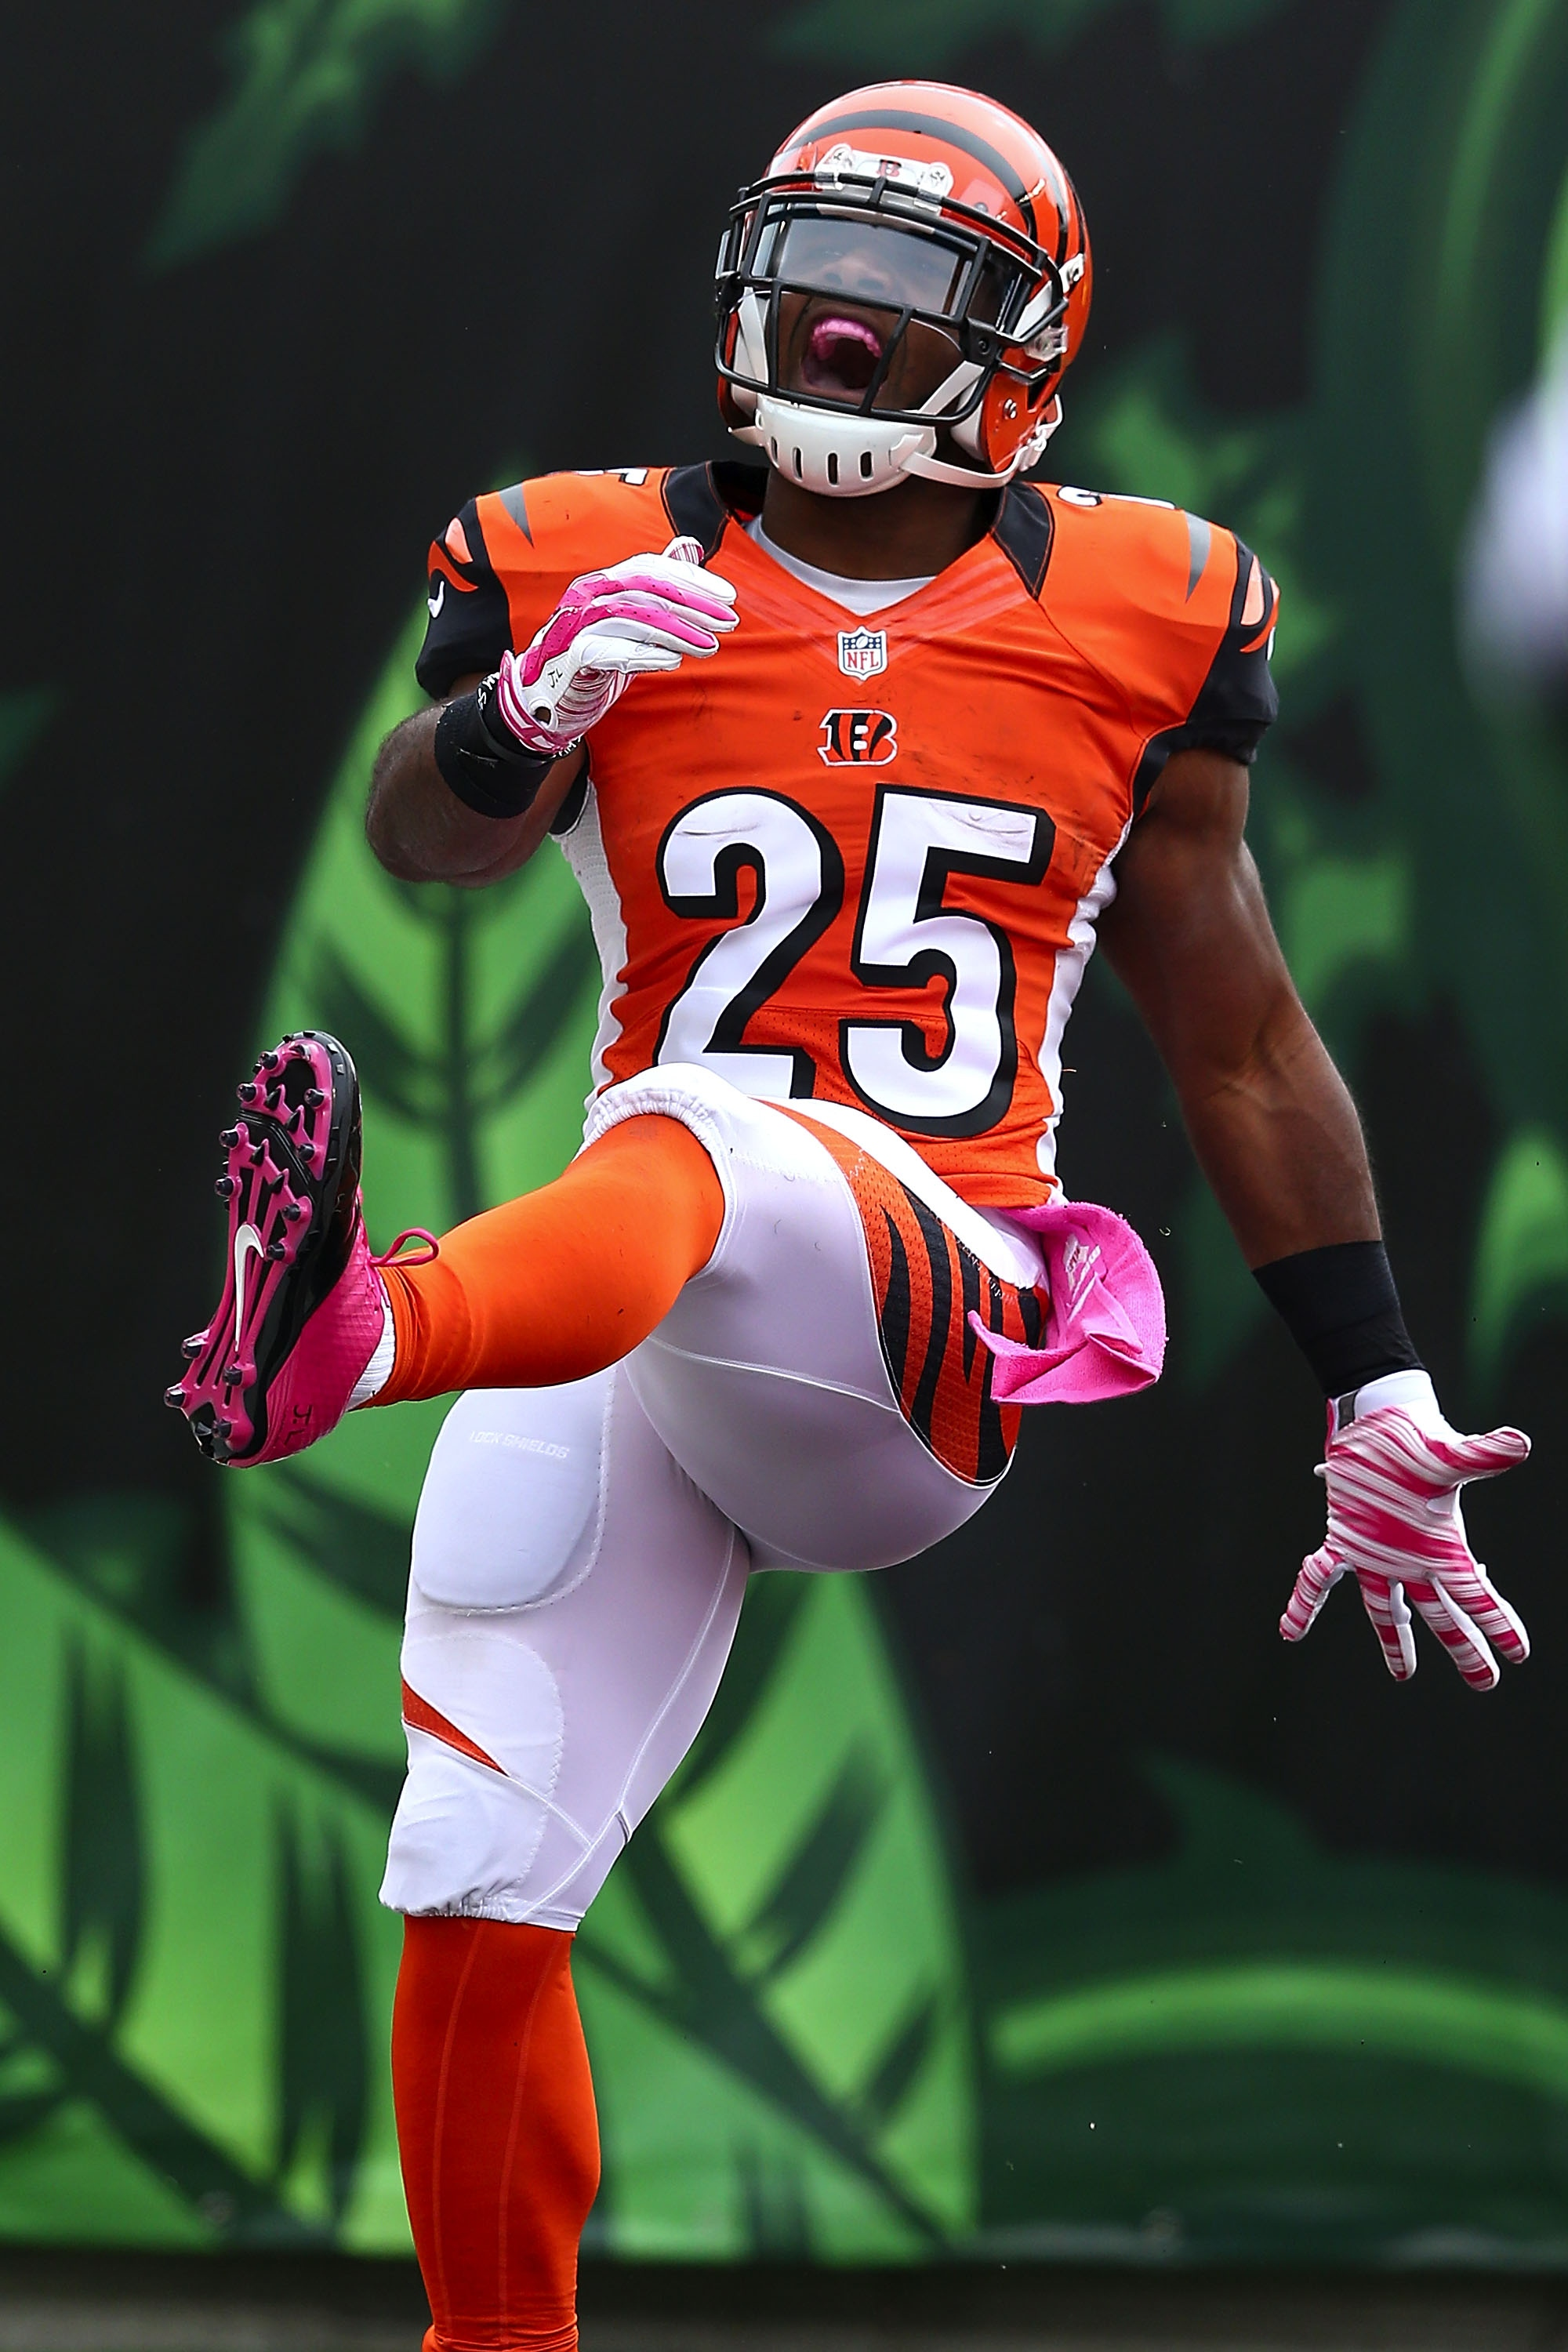 Giovani Bernard, post-TD (Photo by Andy Lyons/Getty Images)